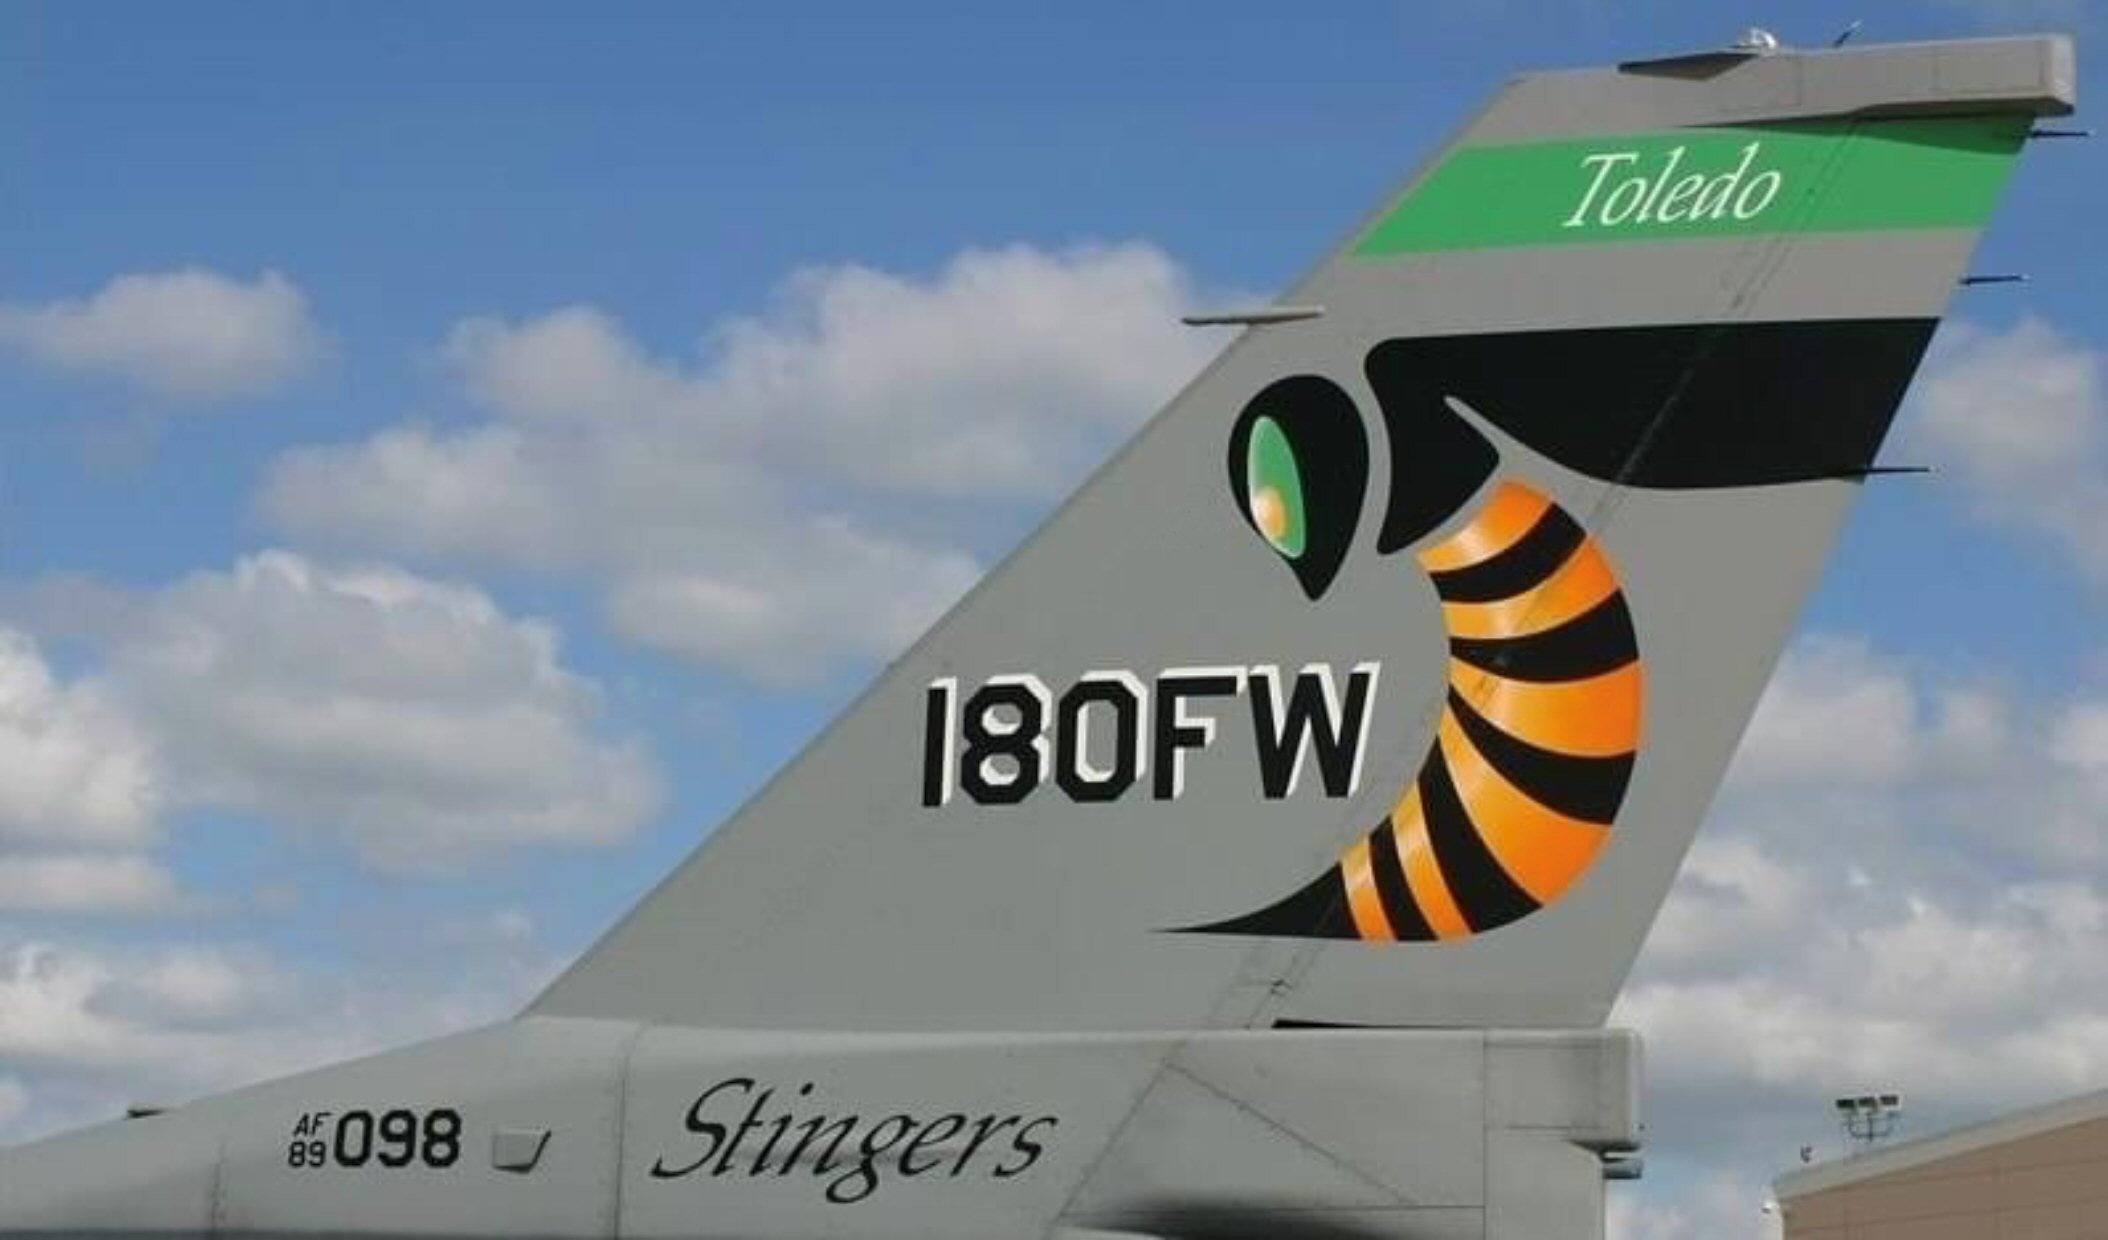 "180th Fighter Wing ""Stingers"" Toledo Ohio"